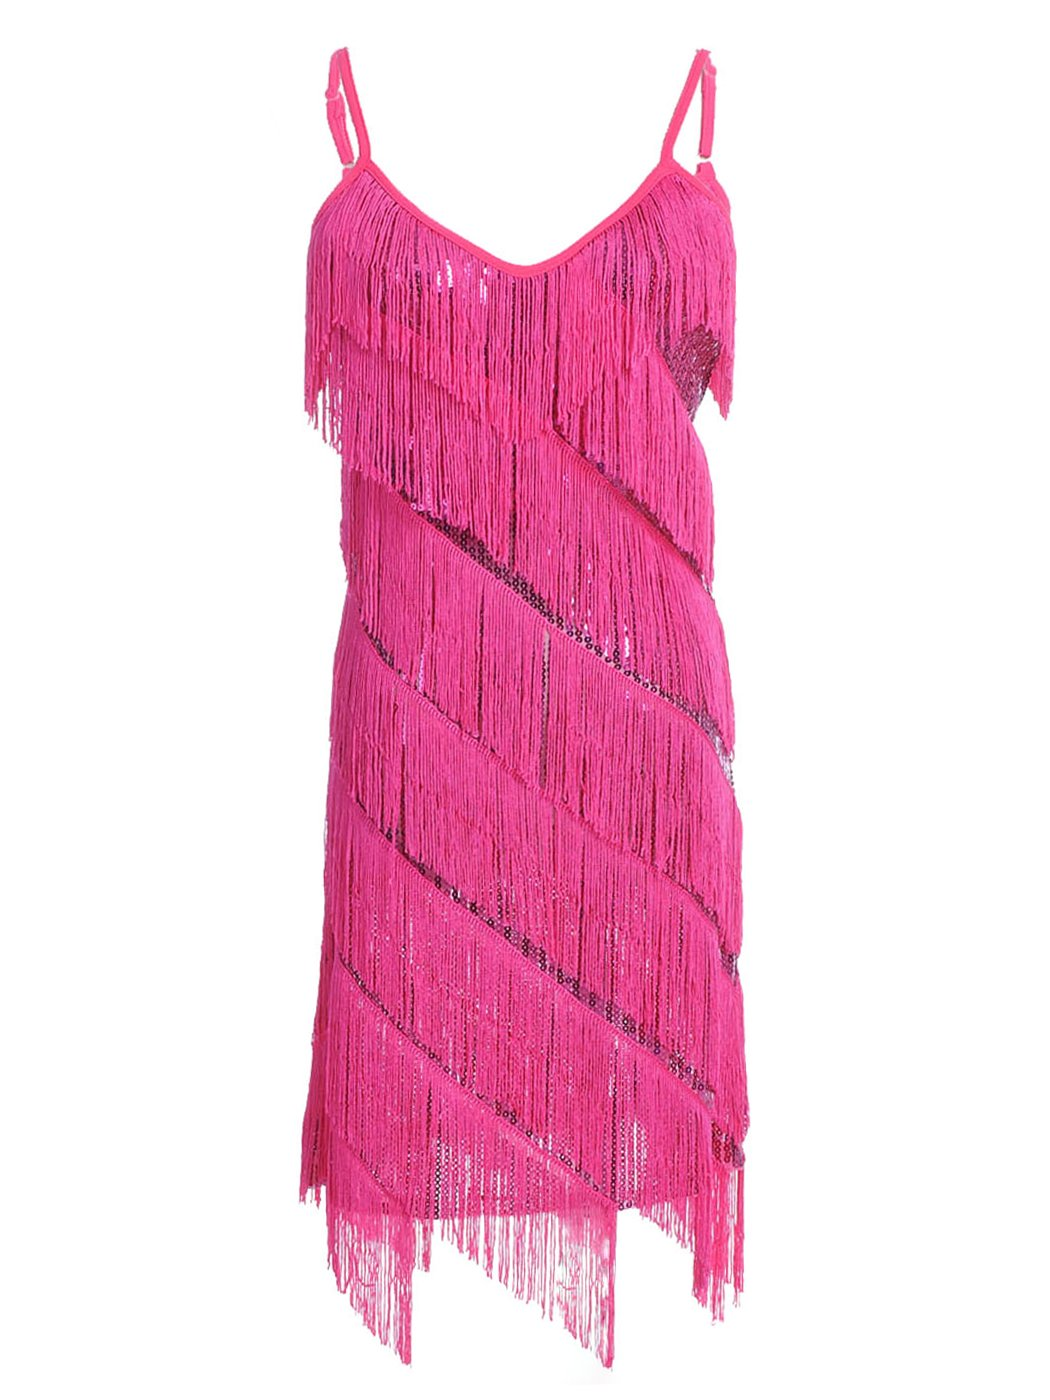 Anna-Kaci Womens Fringe Sequin Strap Backless 1920s Flapper Party Mini Dress, Pink, Small